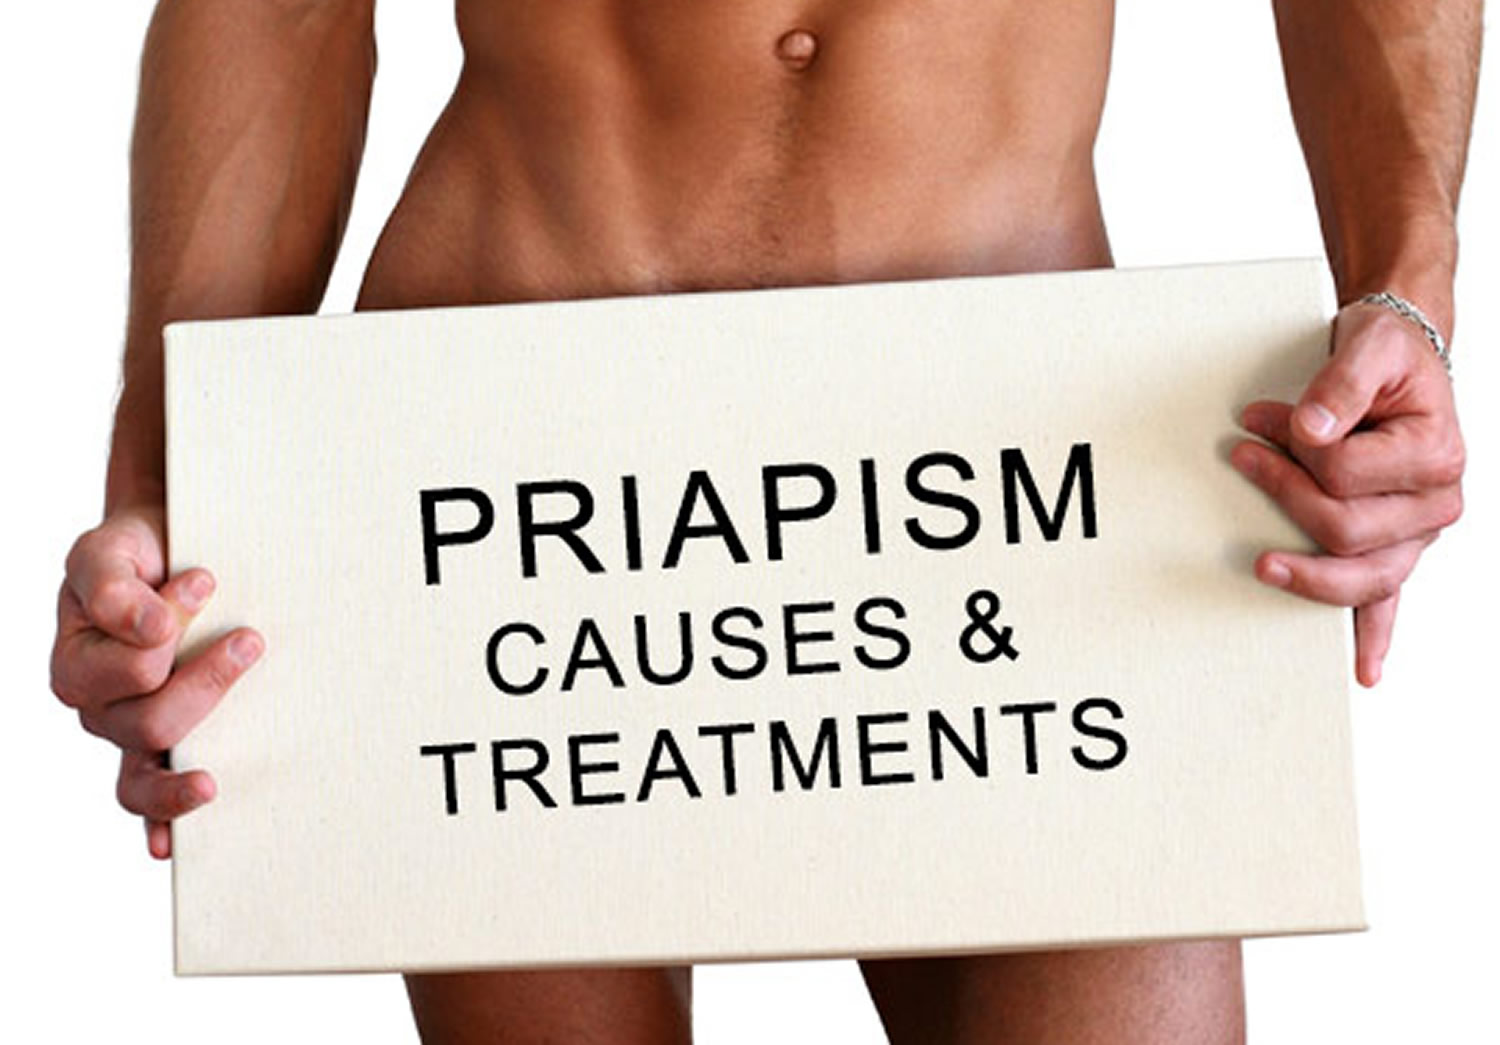 Priapism - Causes, Home and Hospital Emergency Treatment